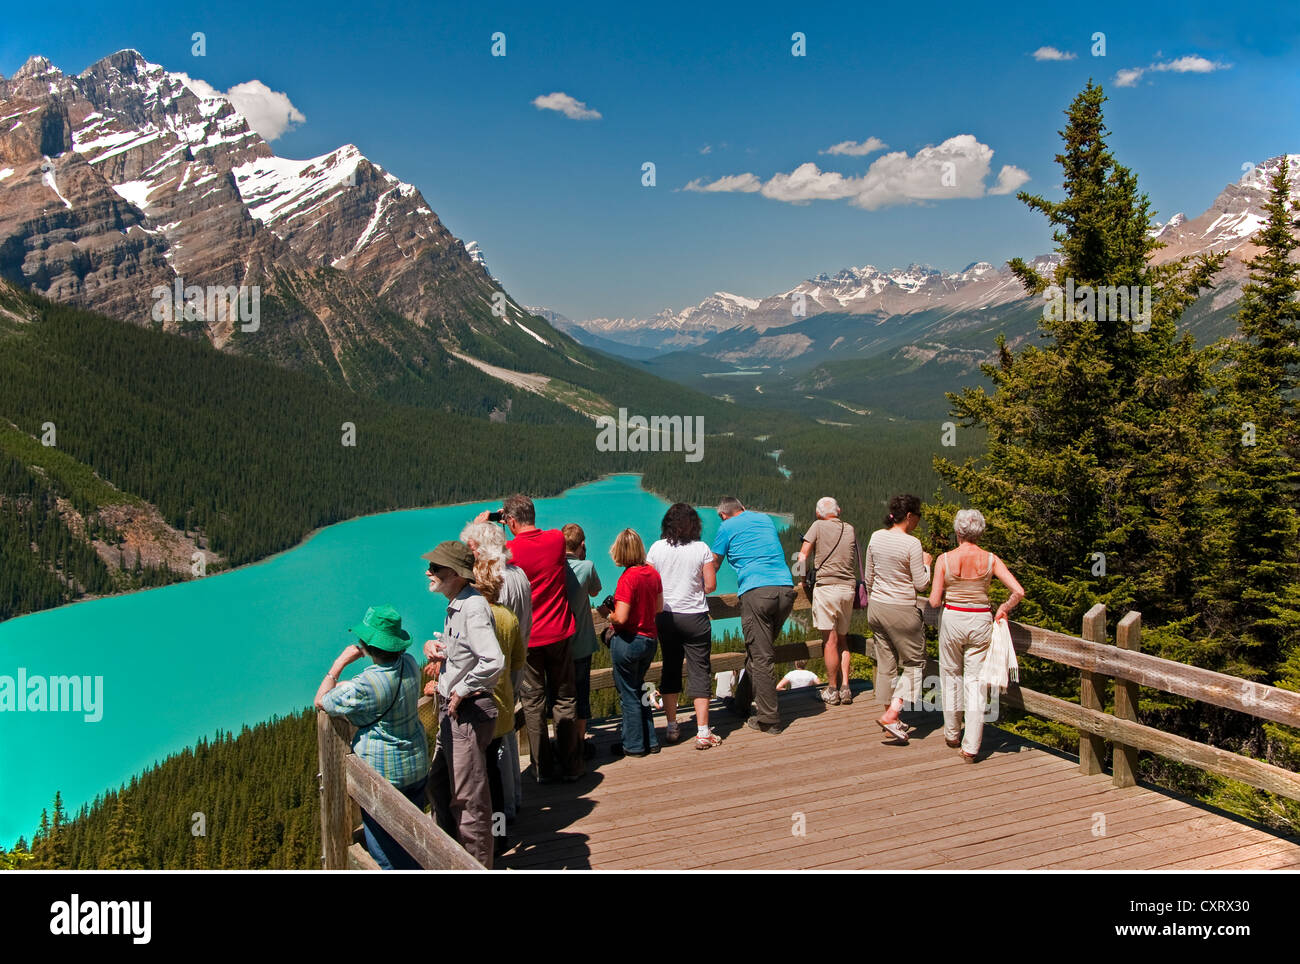 Tourists at Peyto Lake overlook in Banff National Park, Alberta. - Stock Image